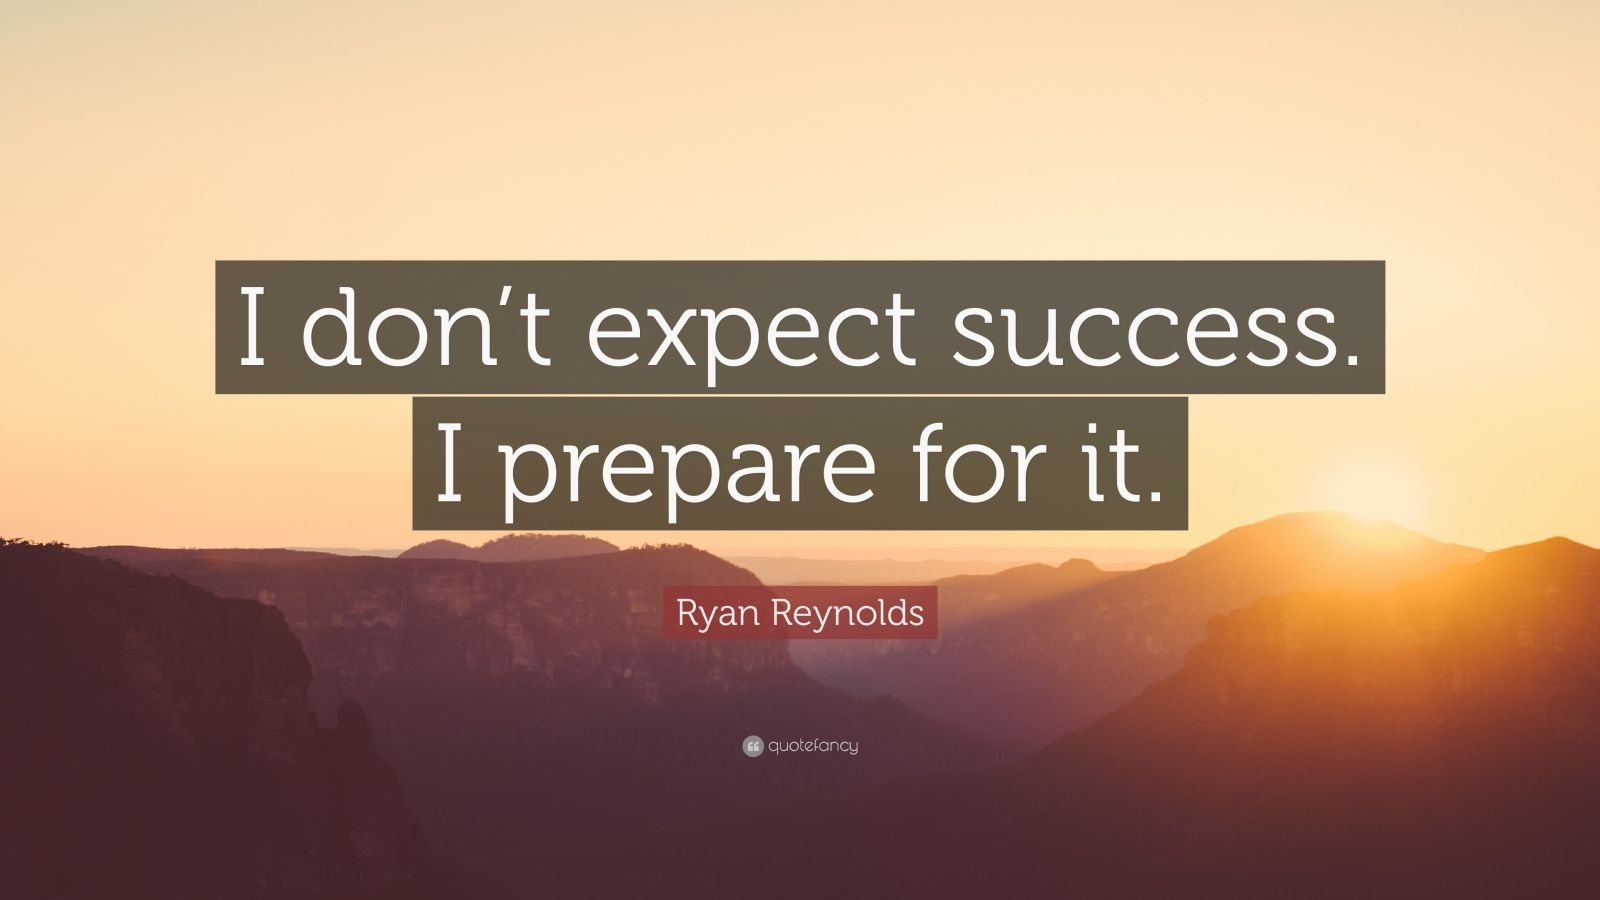 Steve Jobs Wallpaper Quotes Ryan Reynolds Quote I Don T Expect Success I Prepare